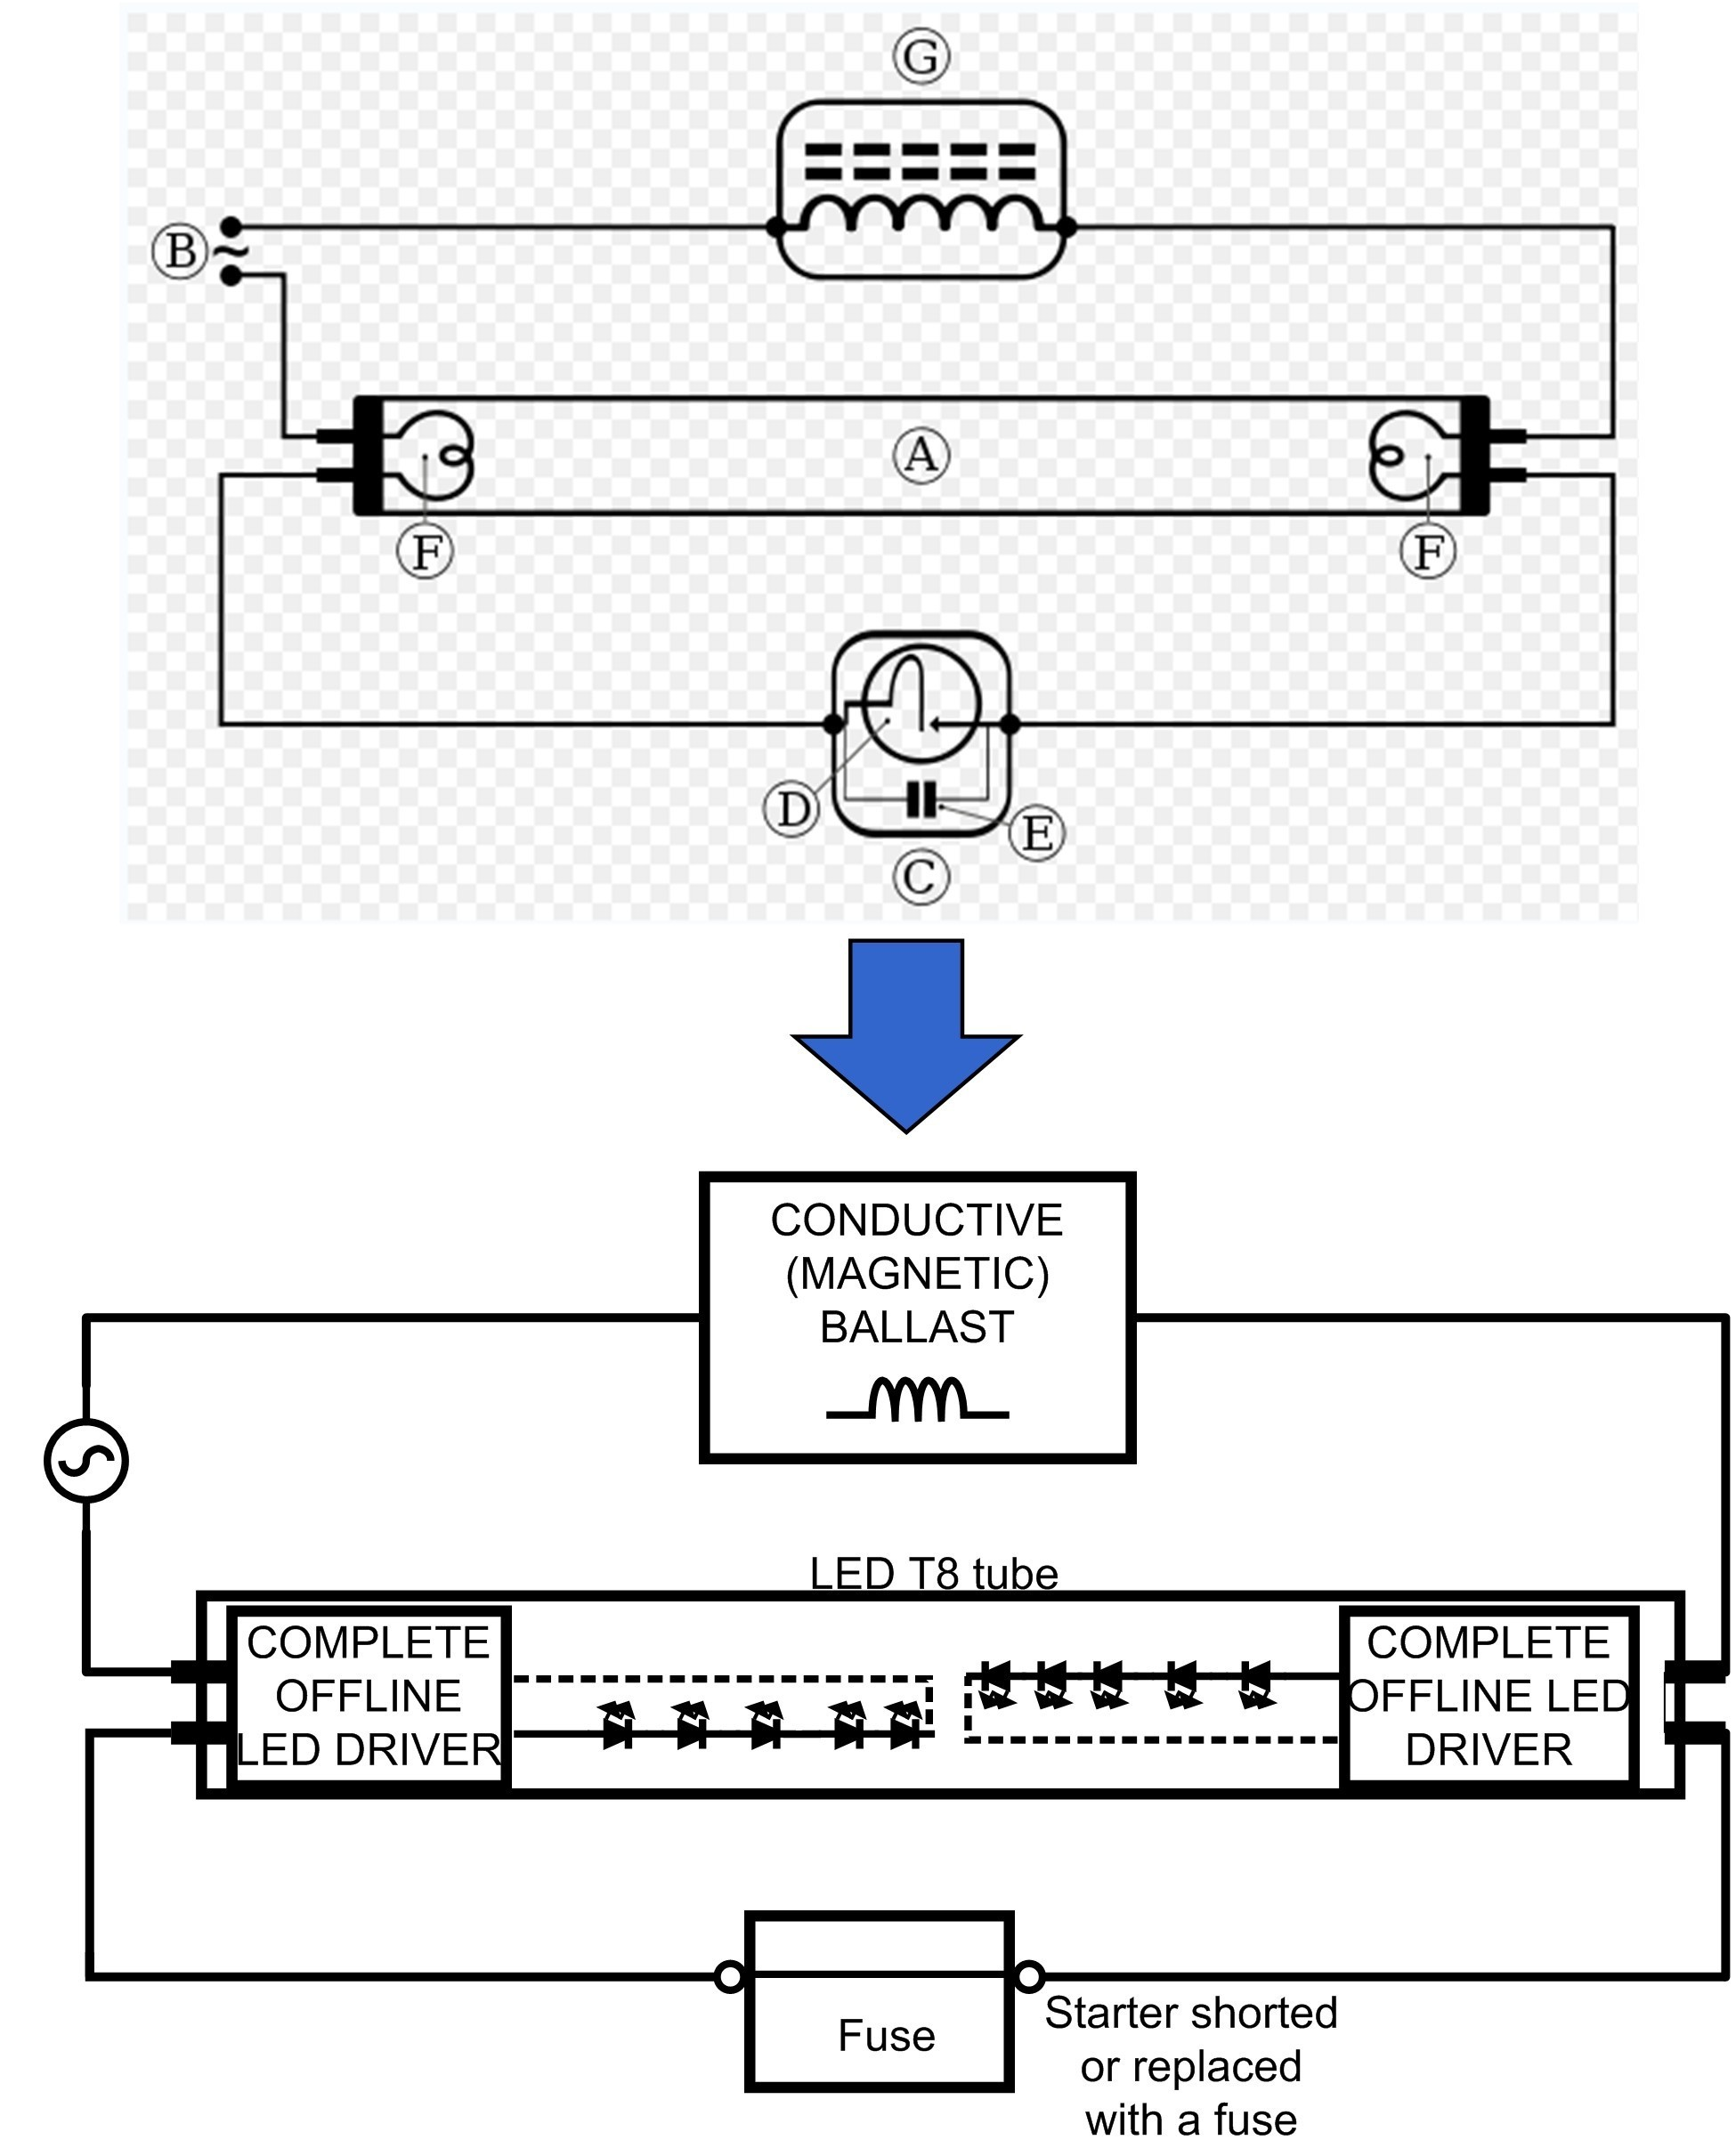 Wiring Diagram Led Tube Philips Best Great T8 Led Wiring